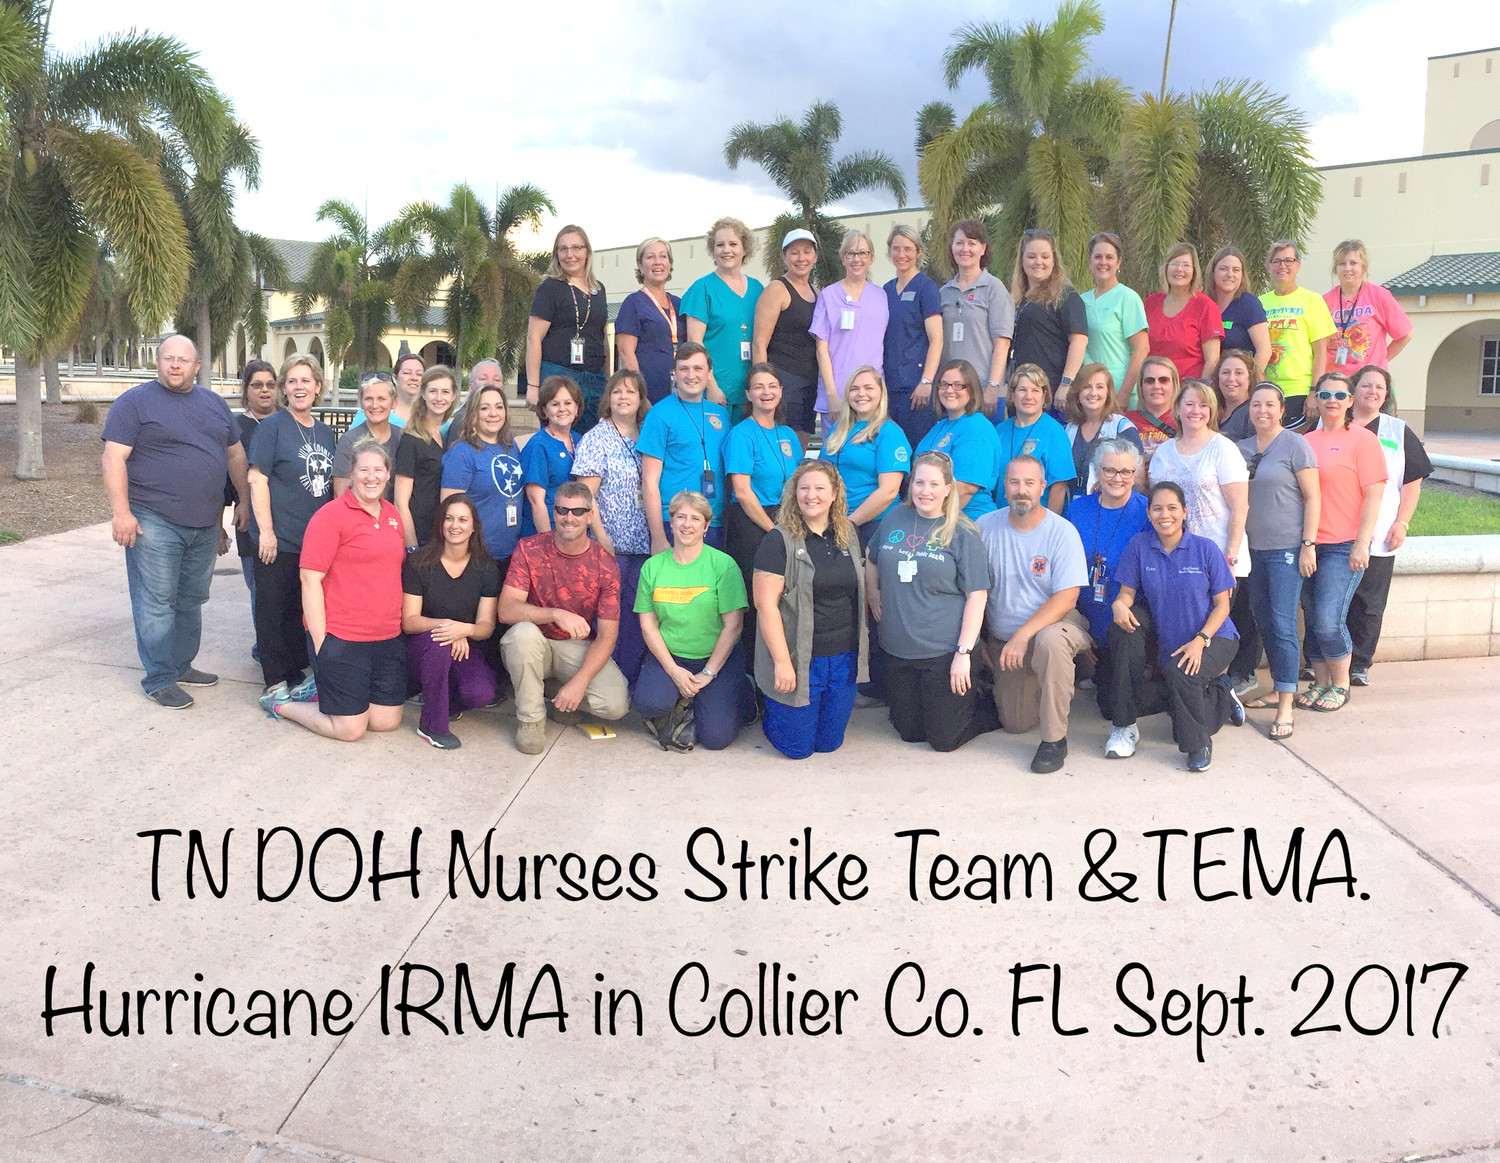 THIS TENNESSEE STRIKE team of nurses is shown in Collier County, Fla., where they assisted with the Hurricane Irma relief effort, providing support to around 200 special needs people at Palmetto High School.